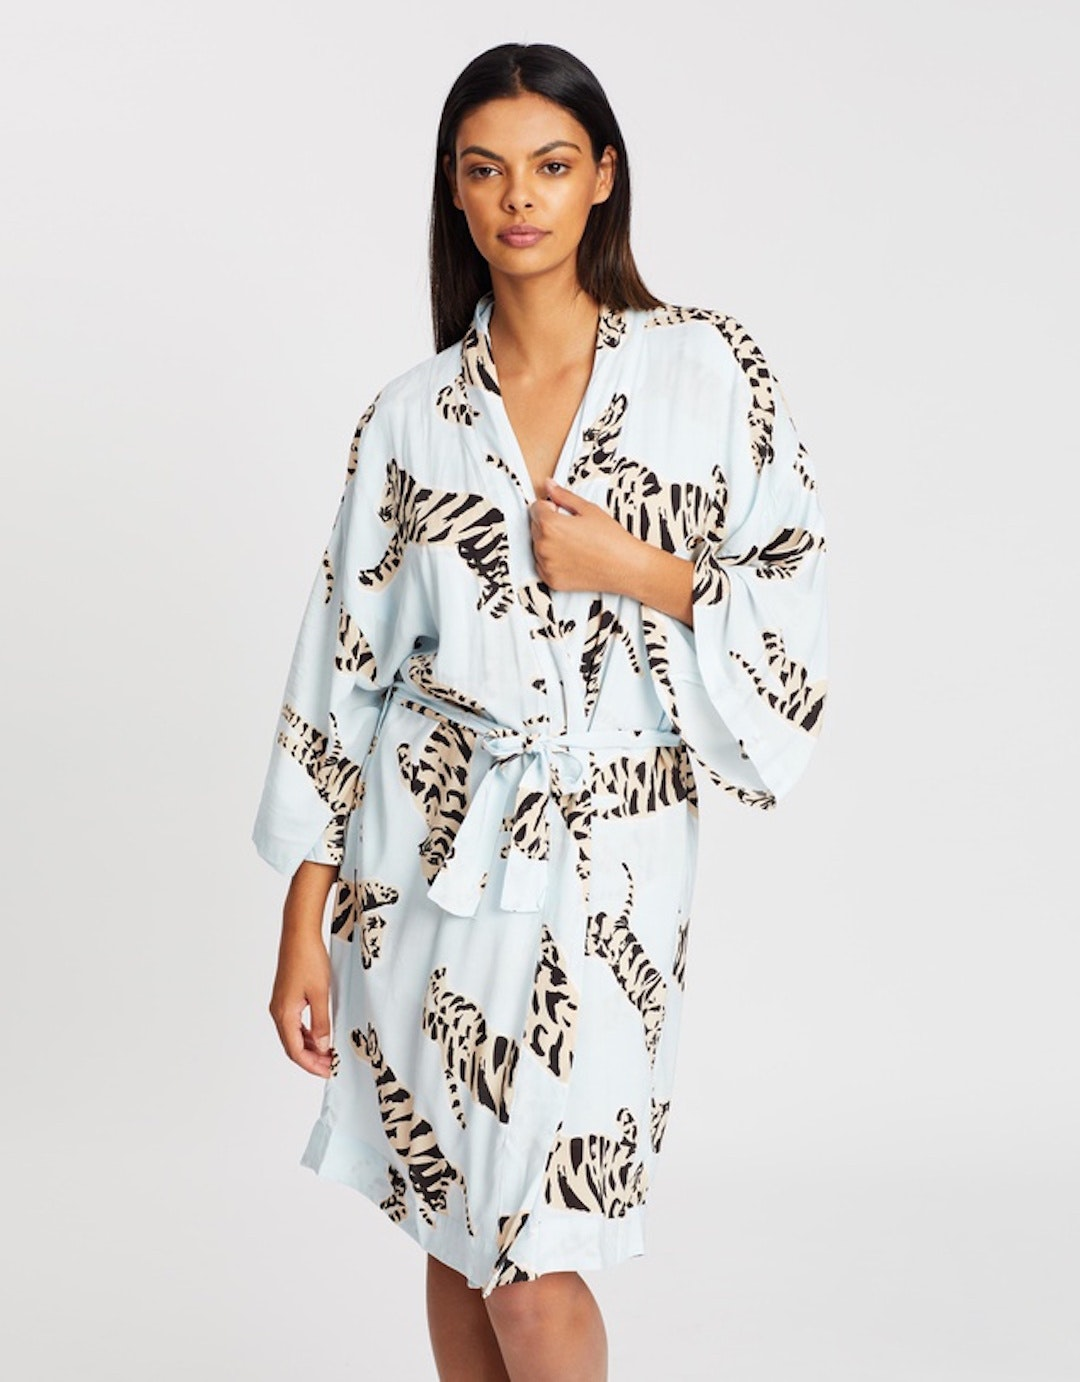 A woman poses wearing a blue dressing gown with a tiger print.